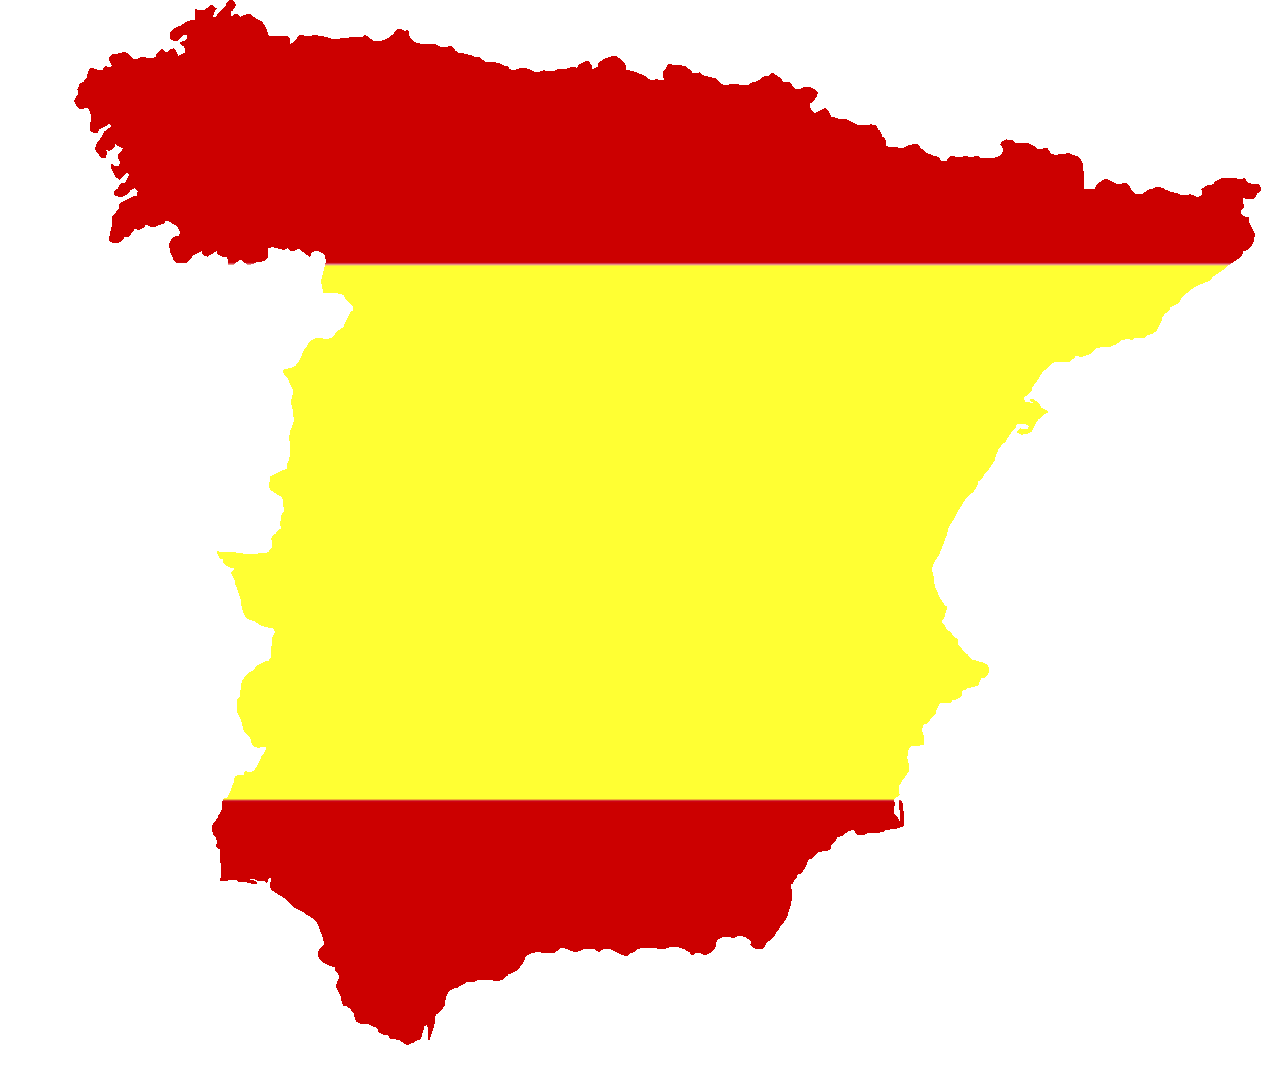 File:Silhouette Spain with Flag.png.